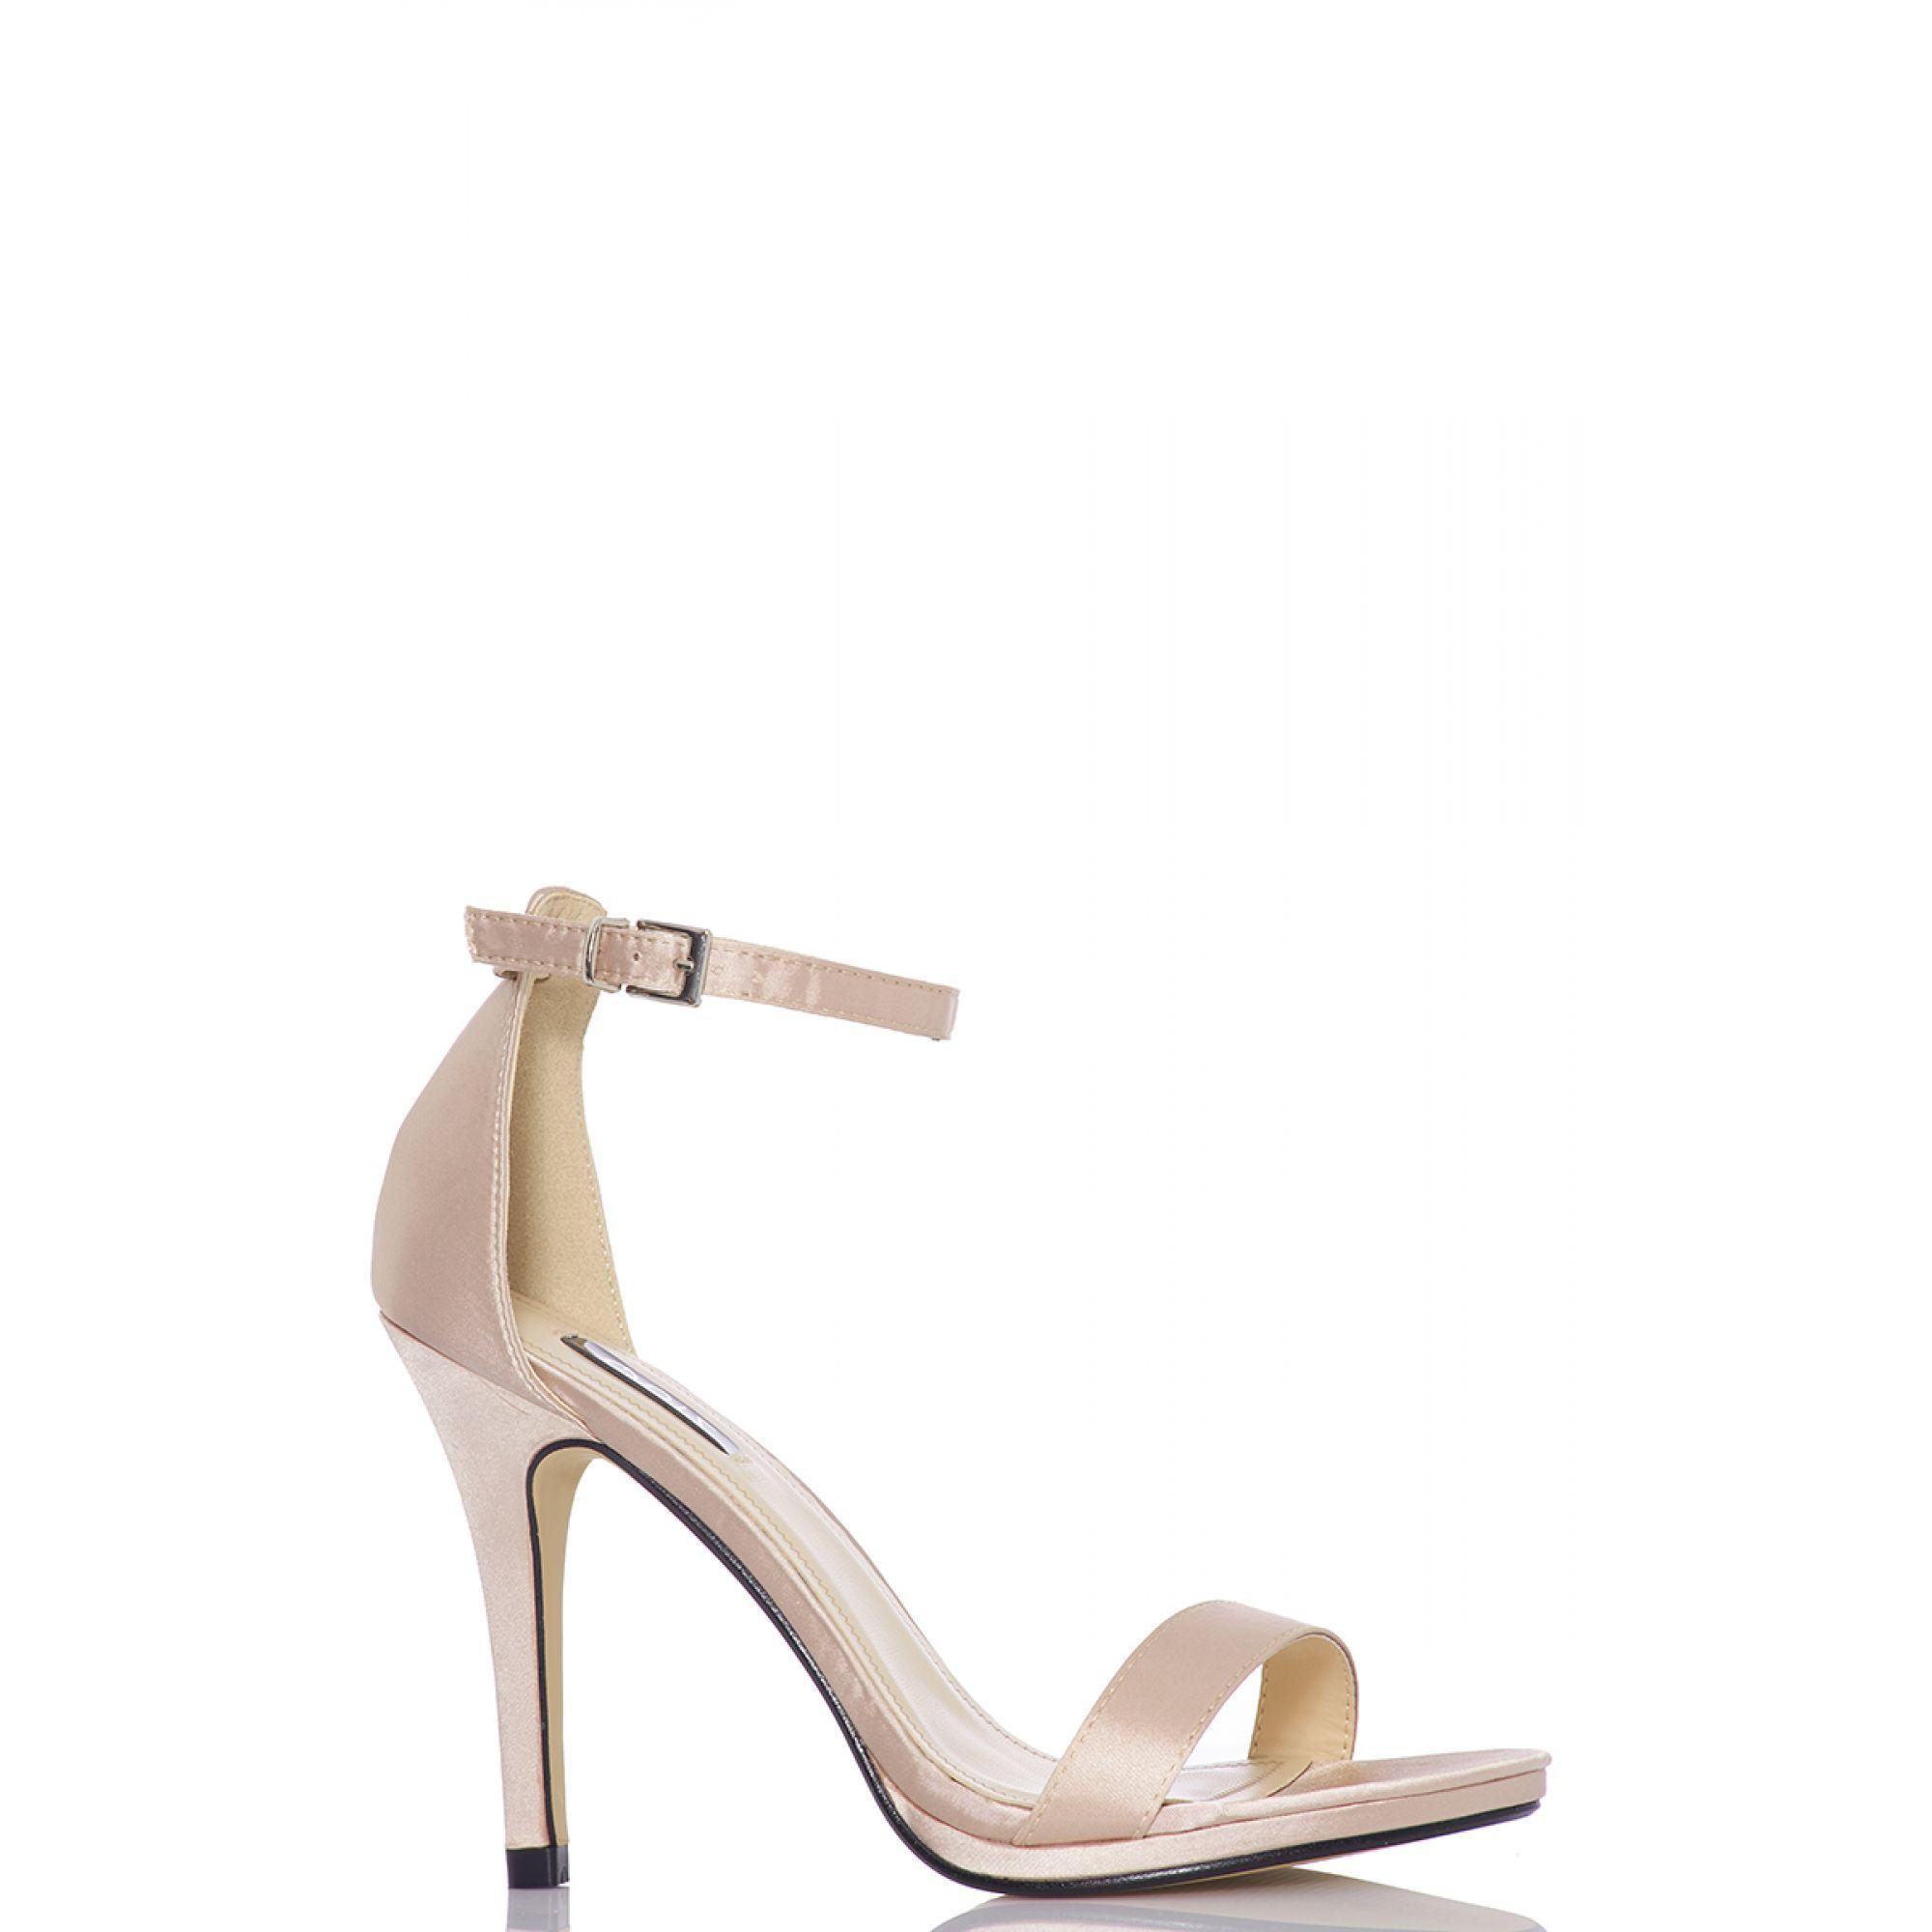 0f12eed4619 Quiz Nude Satin Barely There Heel Sandals in Natural - Lyst